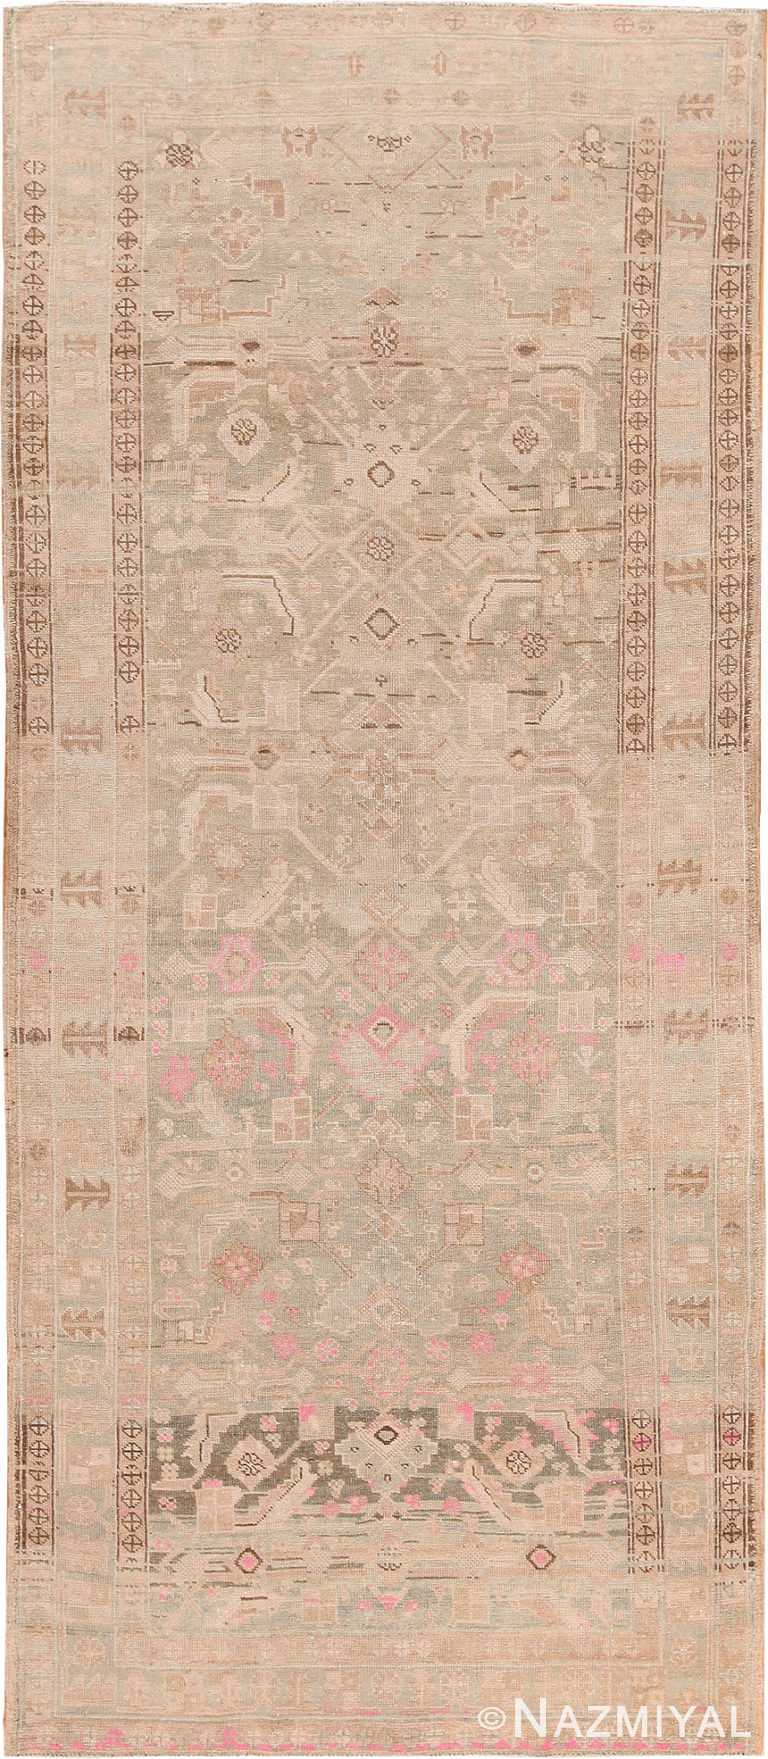 Decorative Tribal Antique Persian Malayer Runner Rug 70437 by Nazmiyal NYC